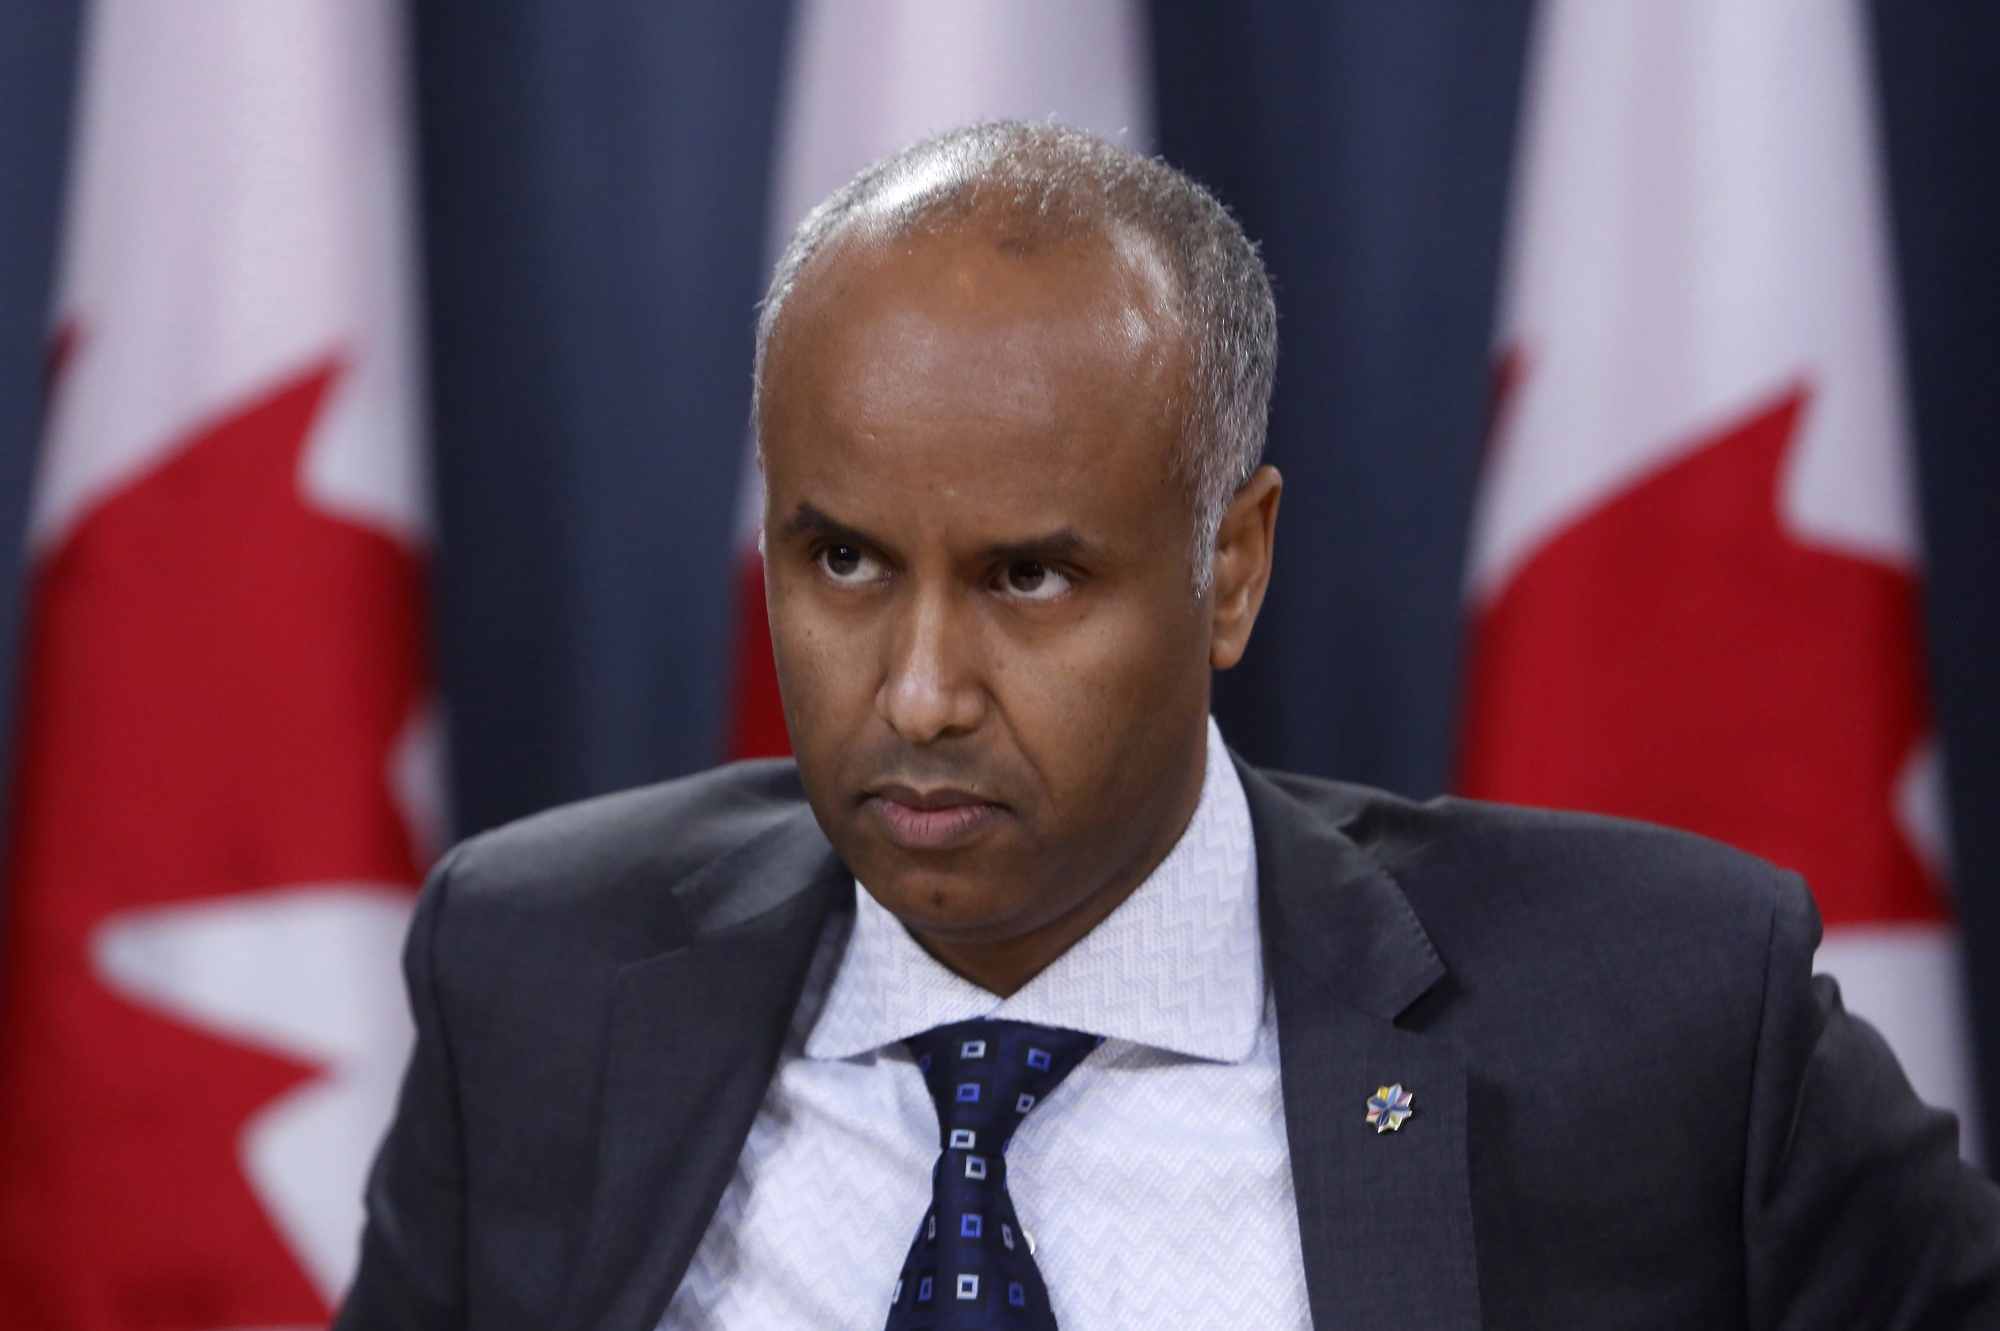 Ahmed Hussen - Scrapping the excessive demand policy for the betterment of immigrants